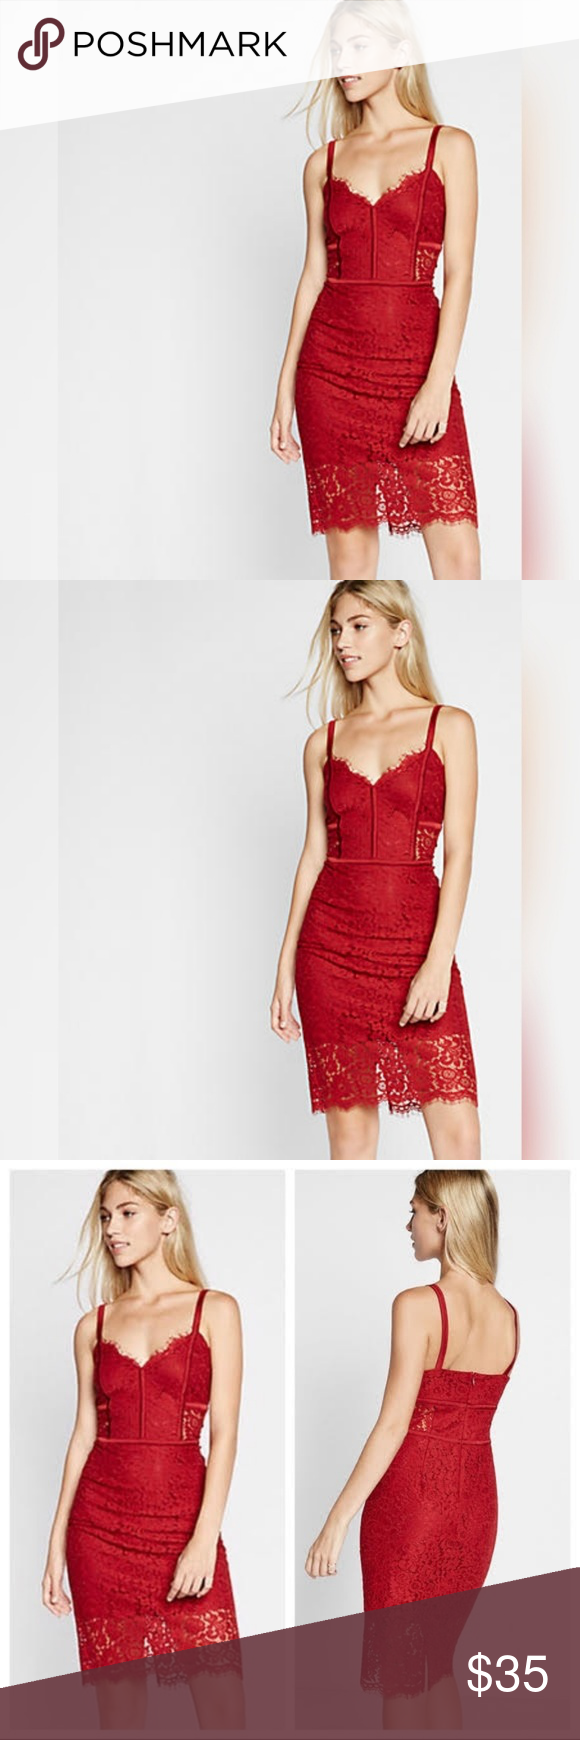 Express Piped Lace Sheath Dress This Red Lace With Silk